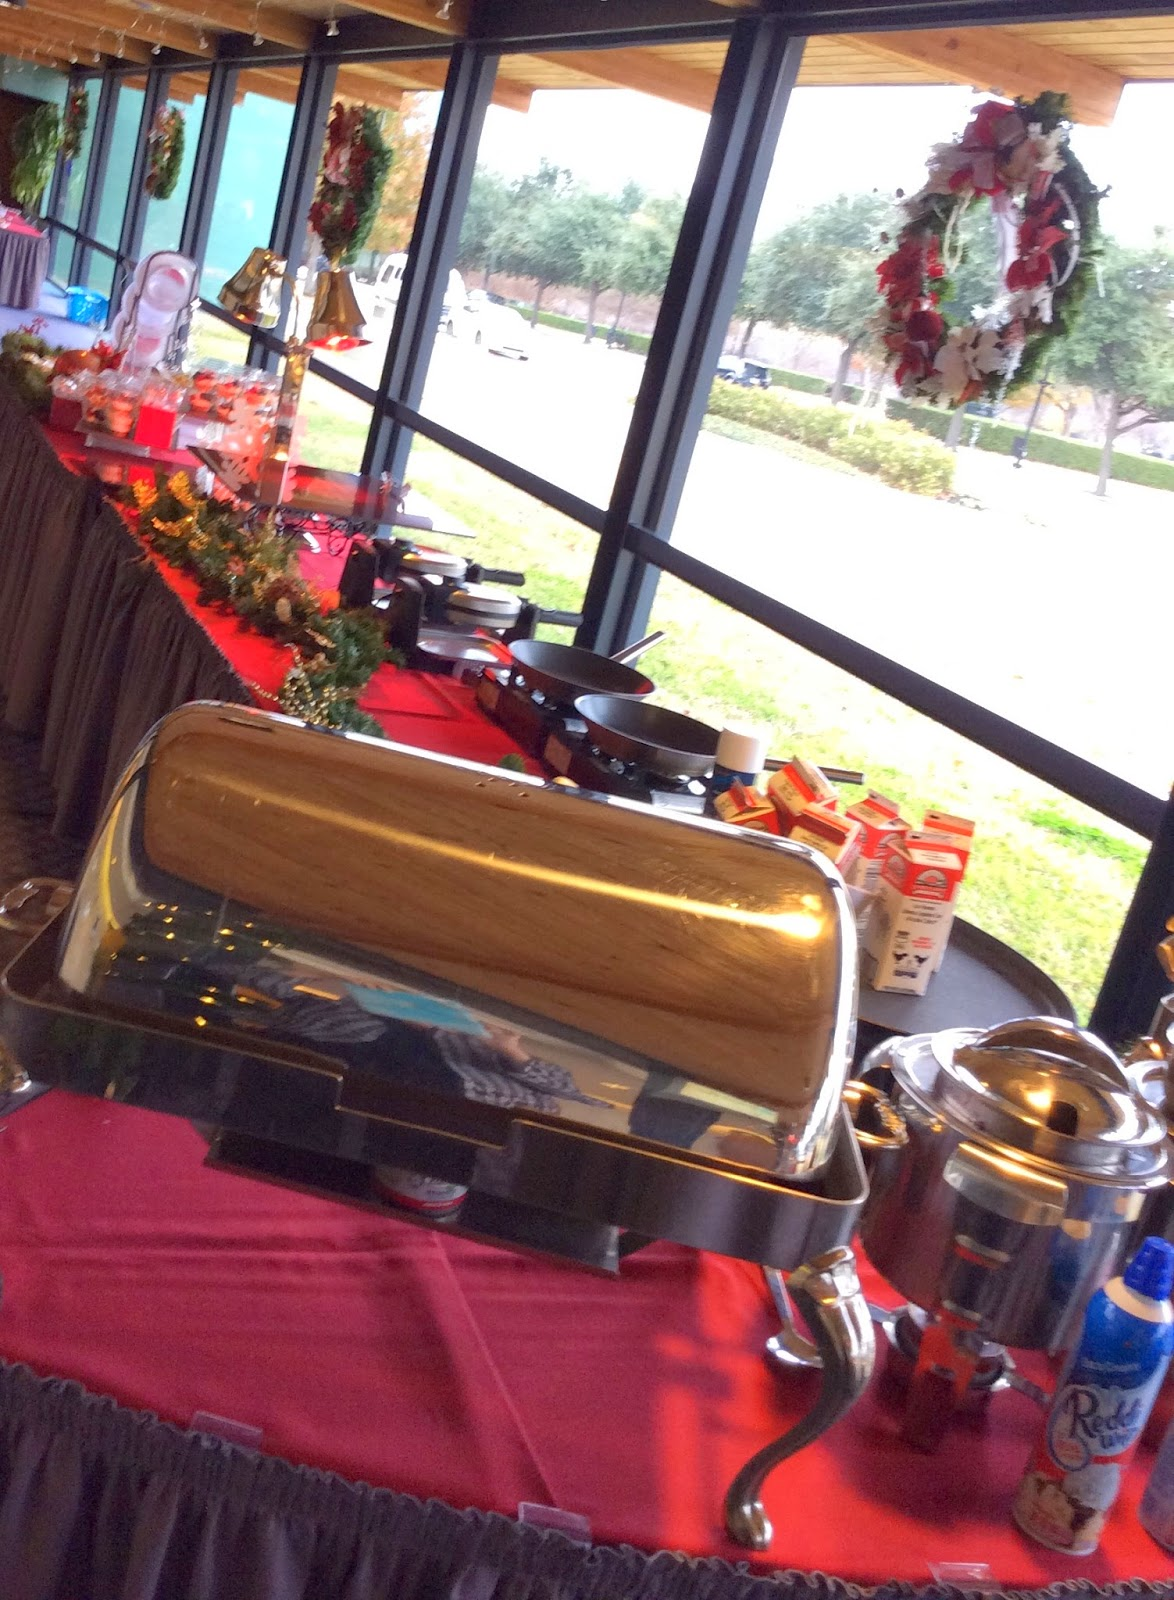 Holiday Party, Christmas Party, Addison Conference Center, Culinary Art Catering